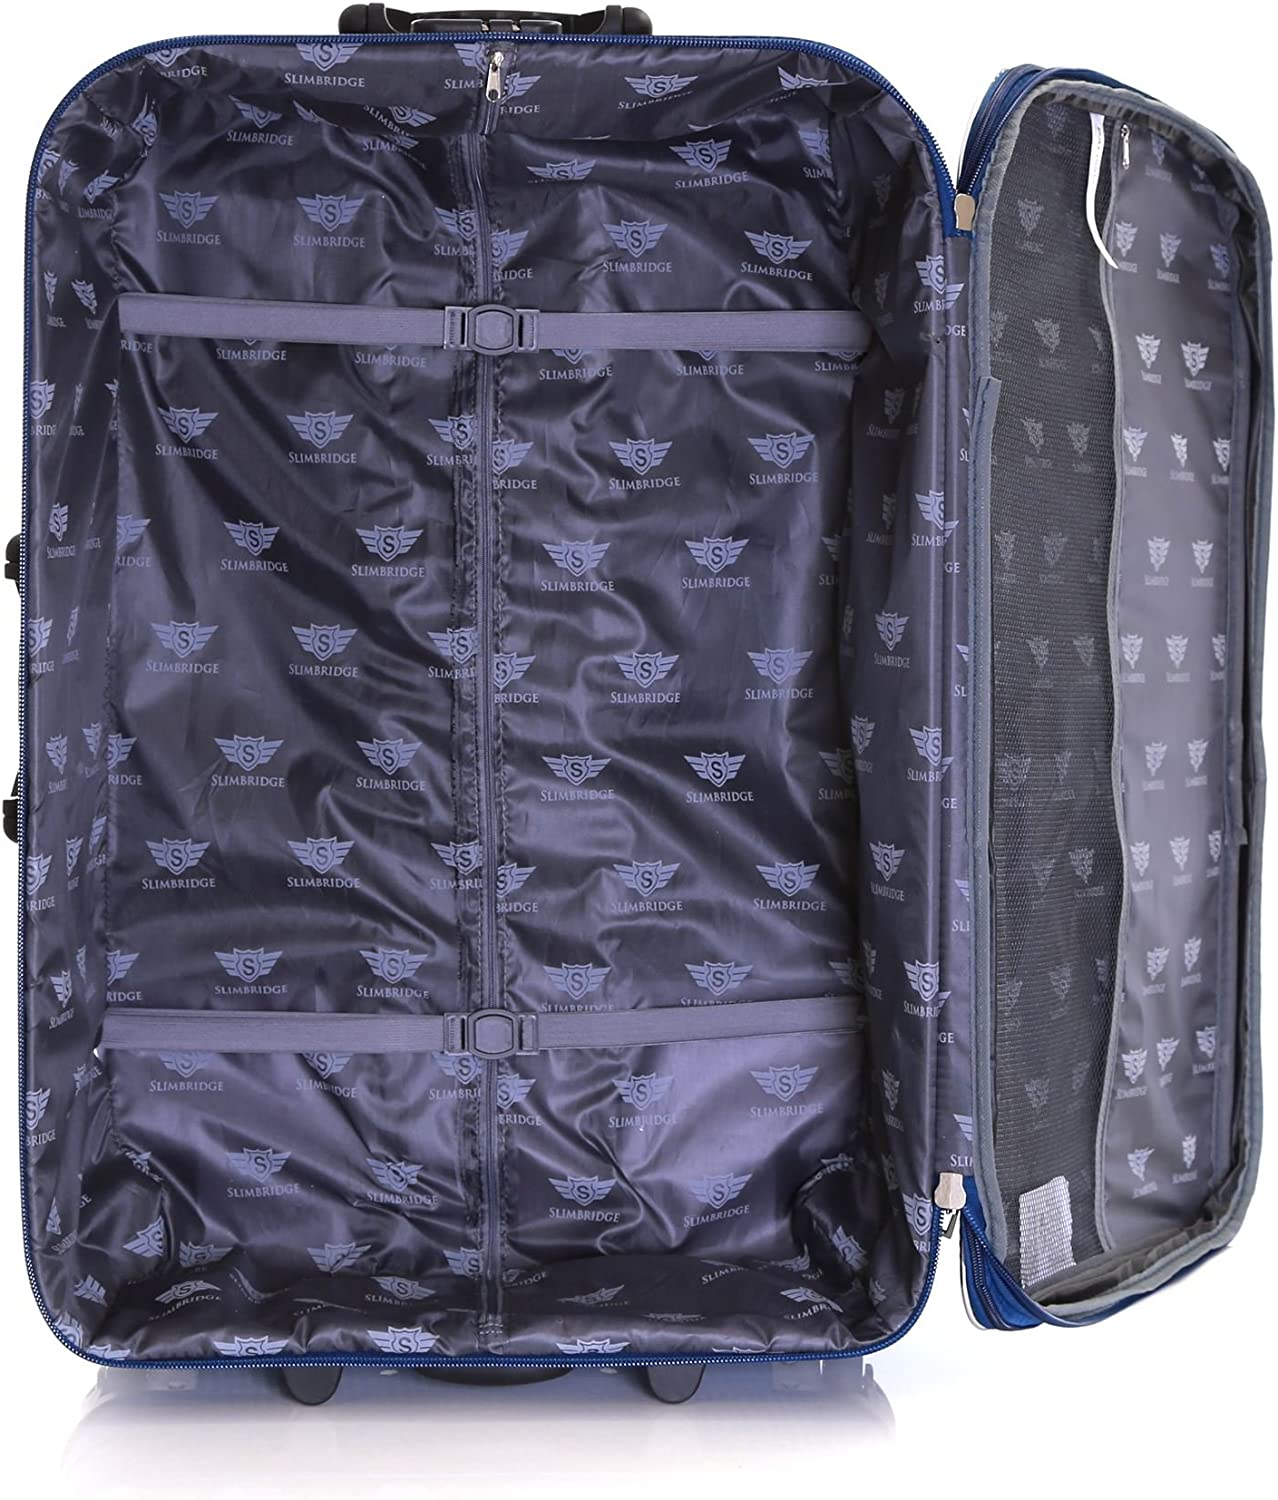 Slimbridge Cabin Hand Luggage Carry-on Suitcase Bag Expandable and Lightweight 55 cm 2.5 kg 35 litres 2 Wheels with Integrated Number Lock Rennes Black